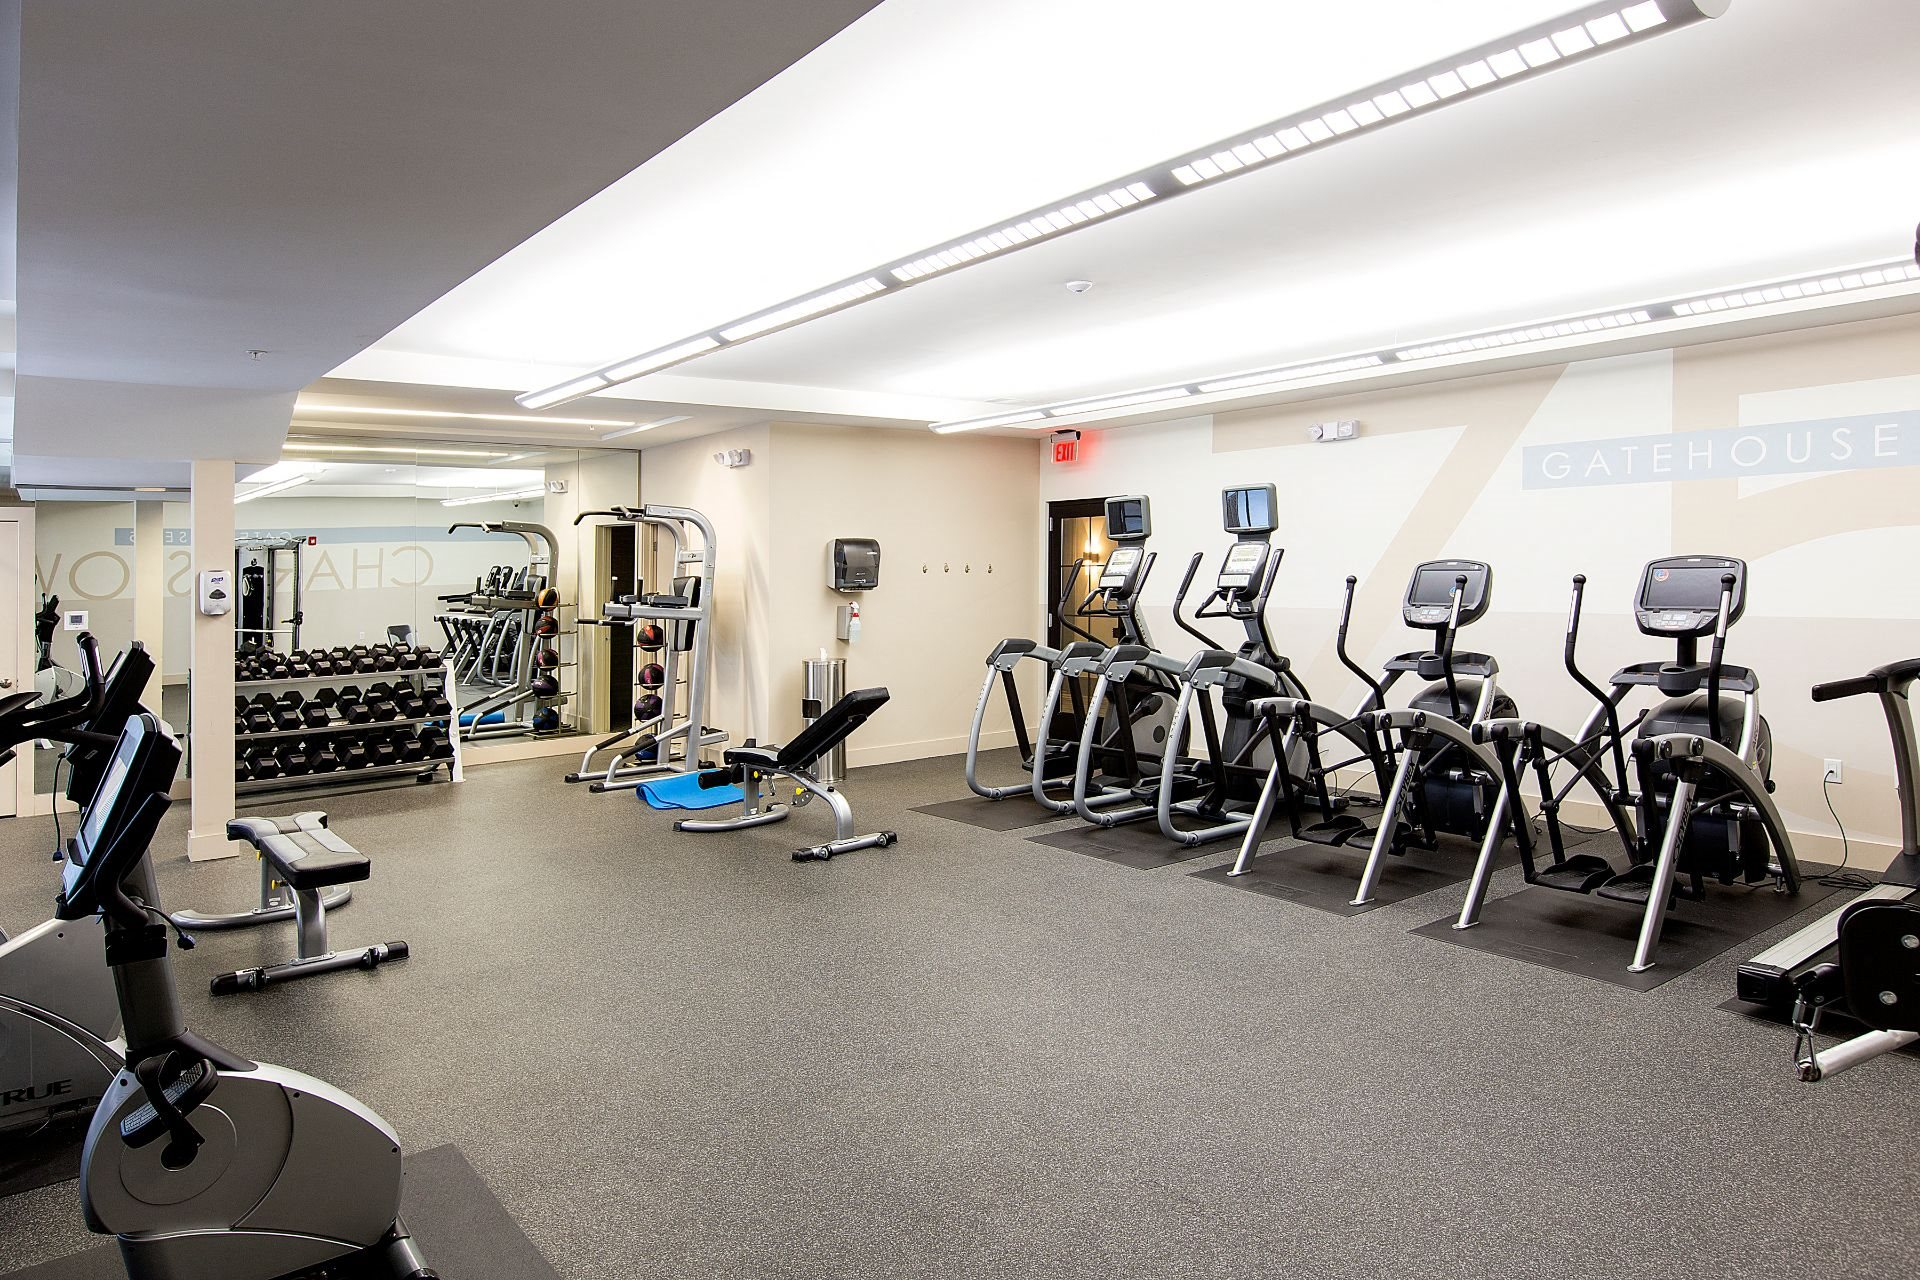 Fitness and Cardio Center with Treadmills, Elliptical Machines, Bikes and Free Weights at Gatehouse 75, Massachusetts